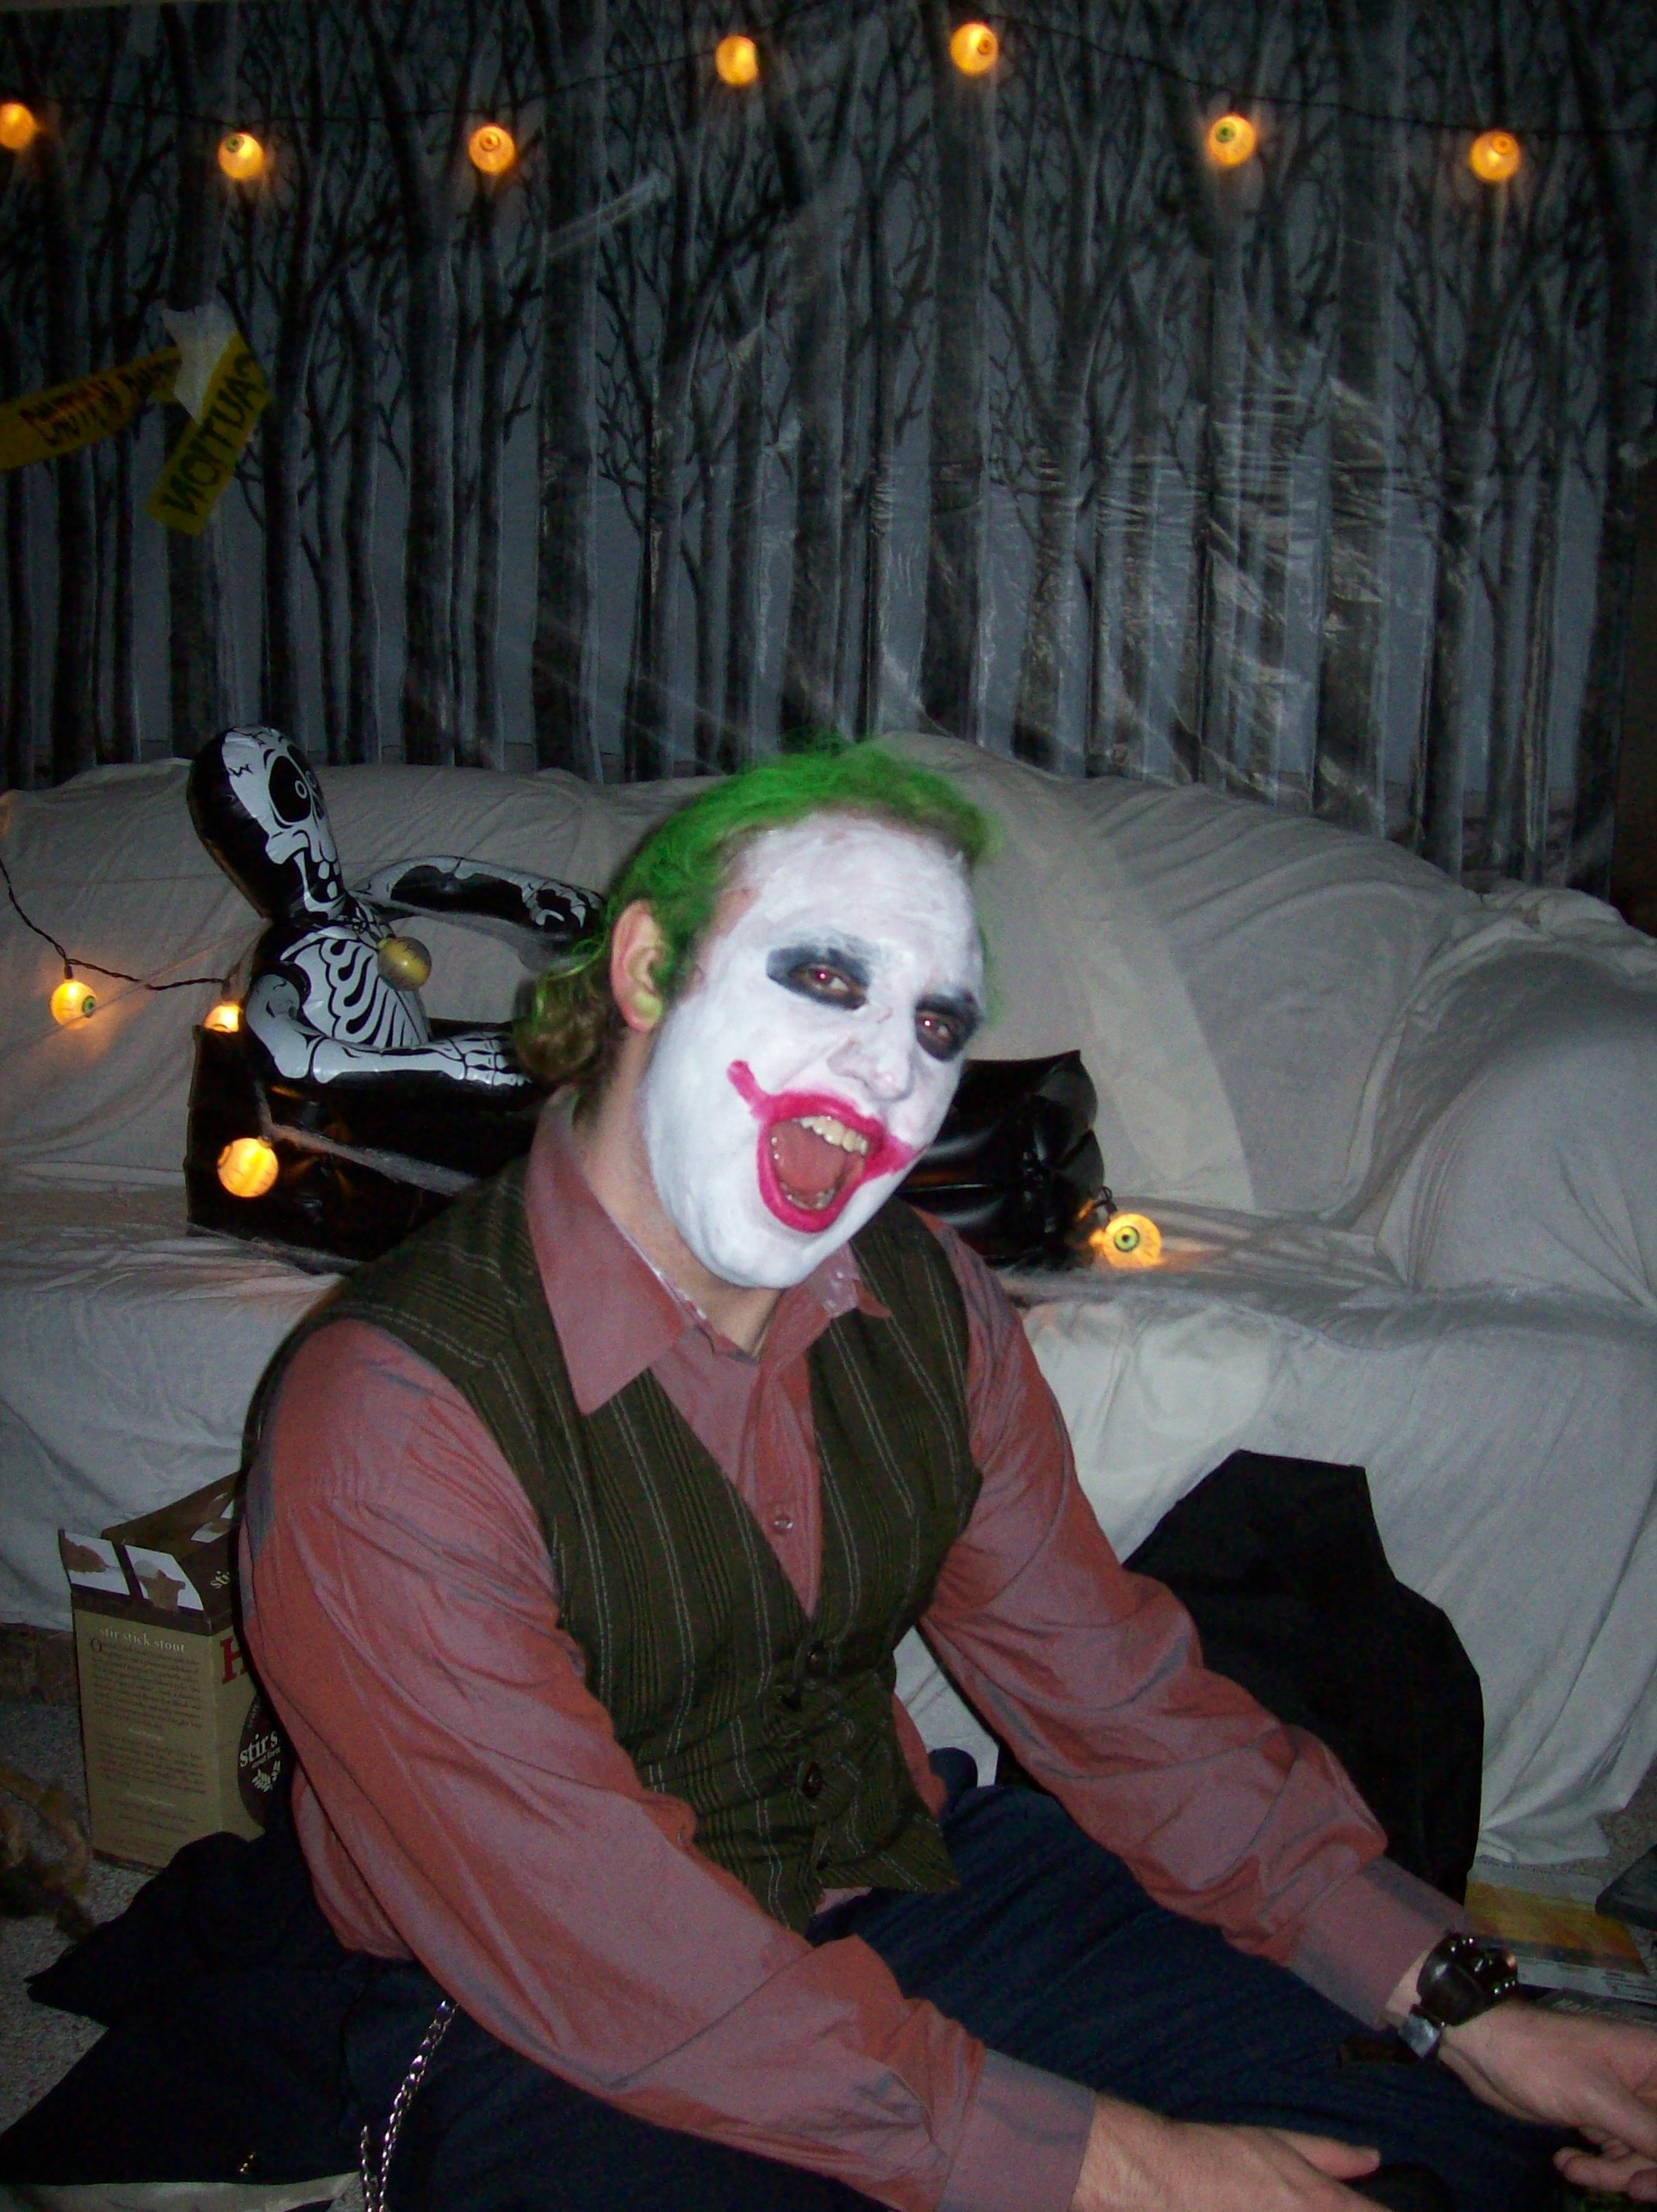 Devin Laughing It Up As The Joker